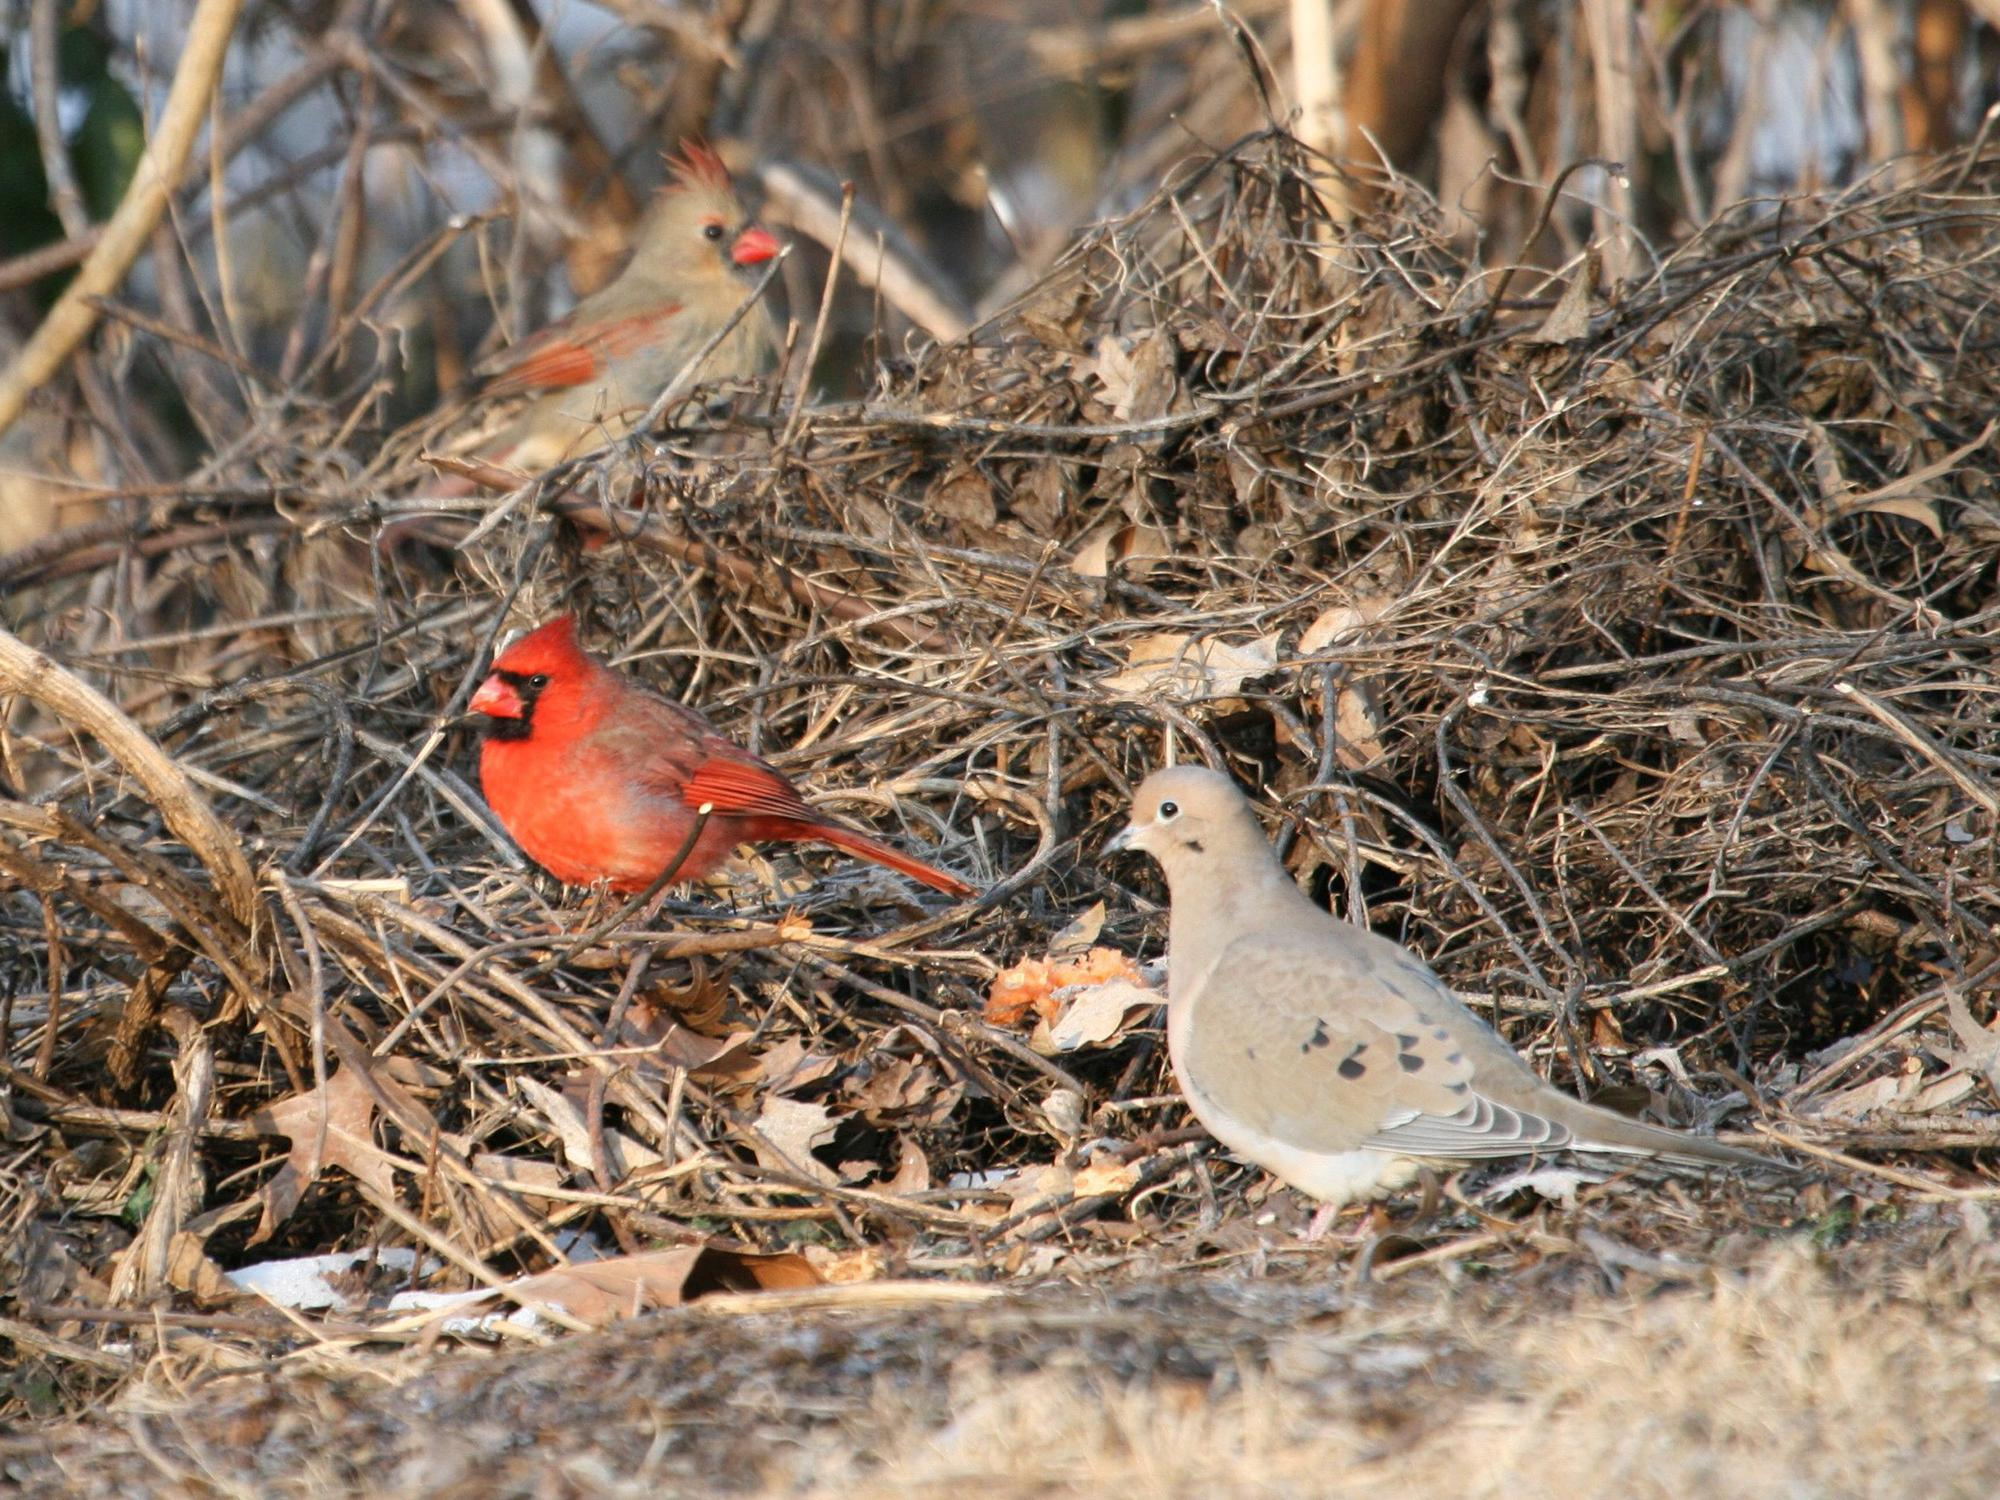 Male and female northern cardinals and a mourning dove search for food in a brush pile. (Photo by Chris Taylor, wildlovephotography.com)